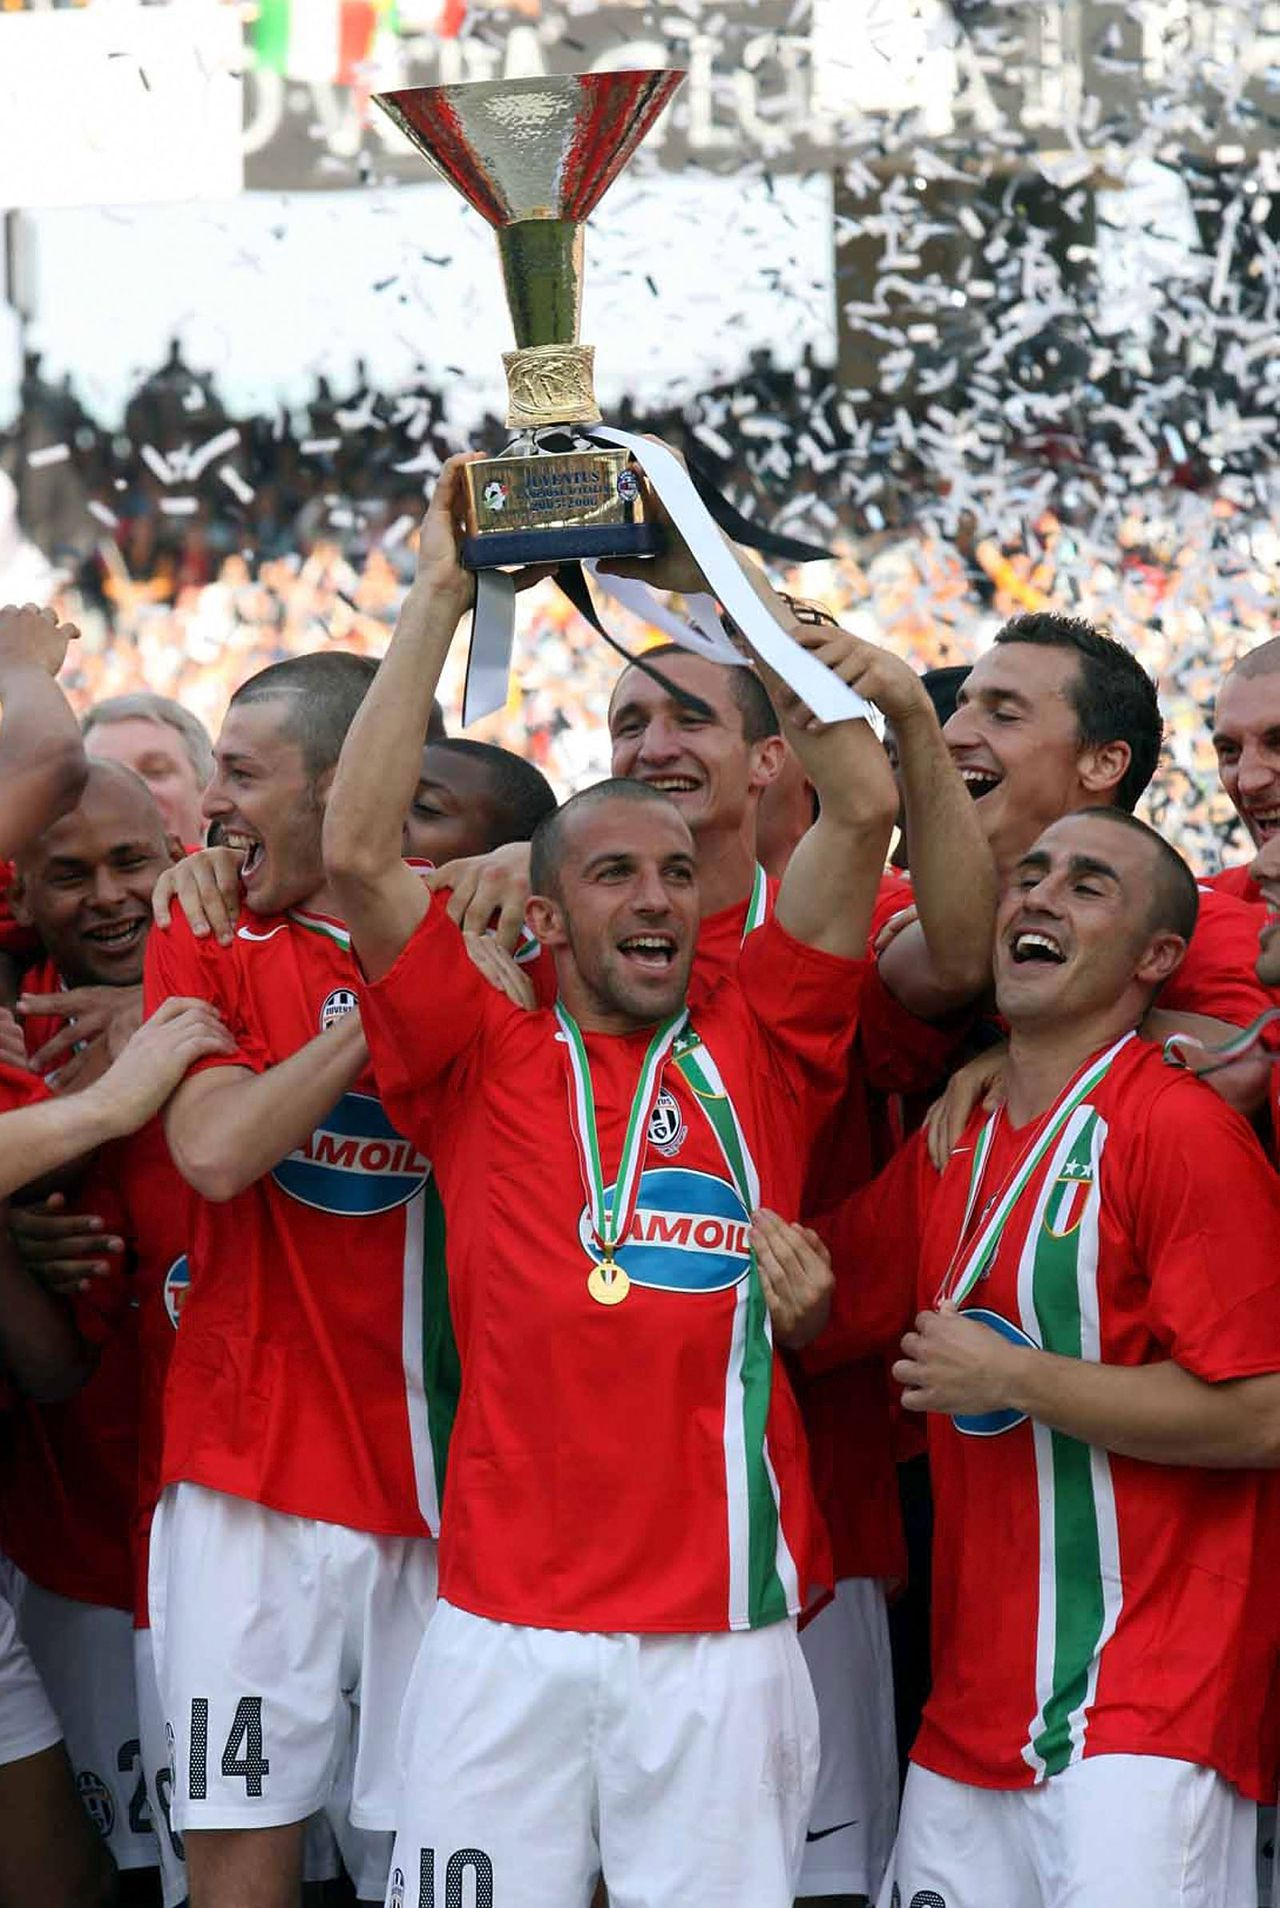 """Juventus juicht na het behalen van de titel. Maar die moet mogelijk worden ingeleverd. Foto Pics United Onderwerp/Subject: Juventus celebrating championship Reklame: Club/Team/Country: Juventus Seizoen/Season: 2005/2006 FOTO/PHOTO: Juventus Alessandro DEL PIERO (C) celebrating with the trophy , behind: Federico BALZARETTI (14) , Zlatan IBRAHIMOVIC (R) and Fabio CANNAVARO (28) Trefwoorden/Keywords: #02 $15 ±1147781919847 Photo- & Copyrights © PICS UNITED P.O. Box 1235 - 5602 BE EINDHOVEN (THE NETHERLANDS) Phone +31 (0)40 296 28 00 Fax +31 (0) 40 248 47 43 http://www.pics-united.com e-mail : info@pics-united.com (If you would like to raise any issues regarding any aspects of products / service of PICS UNITED) or e-mail : sales@pics-united.com ATTENTIE: Publicatie ook bij aanbieding door derden is slechts toegestaan na verkregen toestemming van Pics United. VOLLEDIGE NAAMSVERMELDING IS VERPLICHT! (© PICS UNITED/Naam Fotograaf, zie veld 4 van de bestandsinfo 'credits') ATTENTION: © Pics United. Reproduction/publication of this photo by any parties is only permitted after authorisation is sought and obtained from PICS UNITED- THE NETHERLANDS The image is copyright to PICS UNITED or its associate photographers. Full name must be printed with the photo! (© PICS UNITED/Name Photographer, see field 4 of the File Info, 'credits"""") You may not publish, reproduce on either an electronic bulletin board, corporate intranet or the Internet, licence, sell or otherwise distribute the image(s) without a Licence to do so from PICS UNITED."""